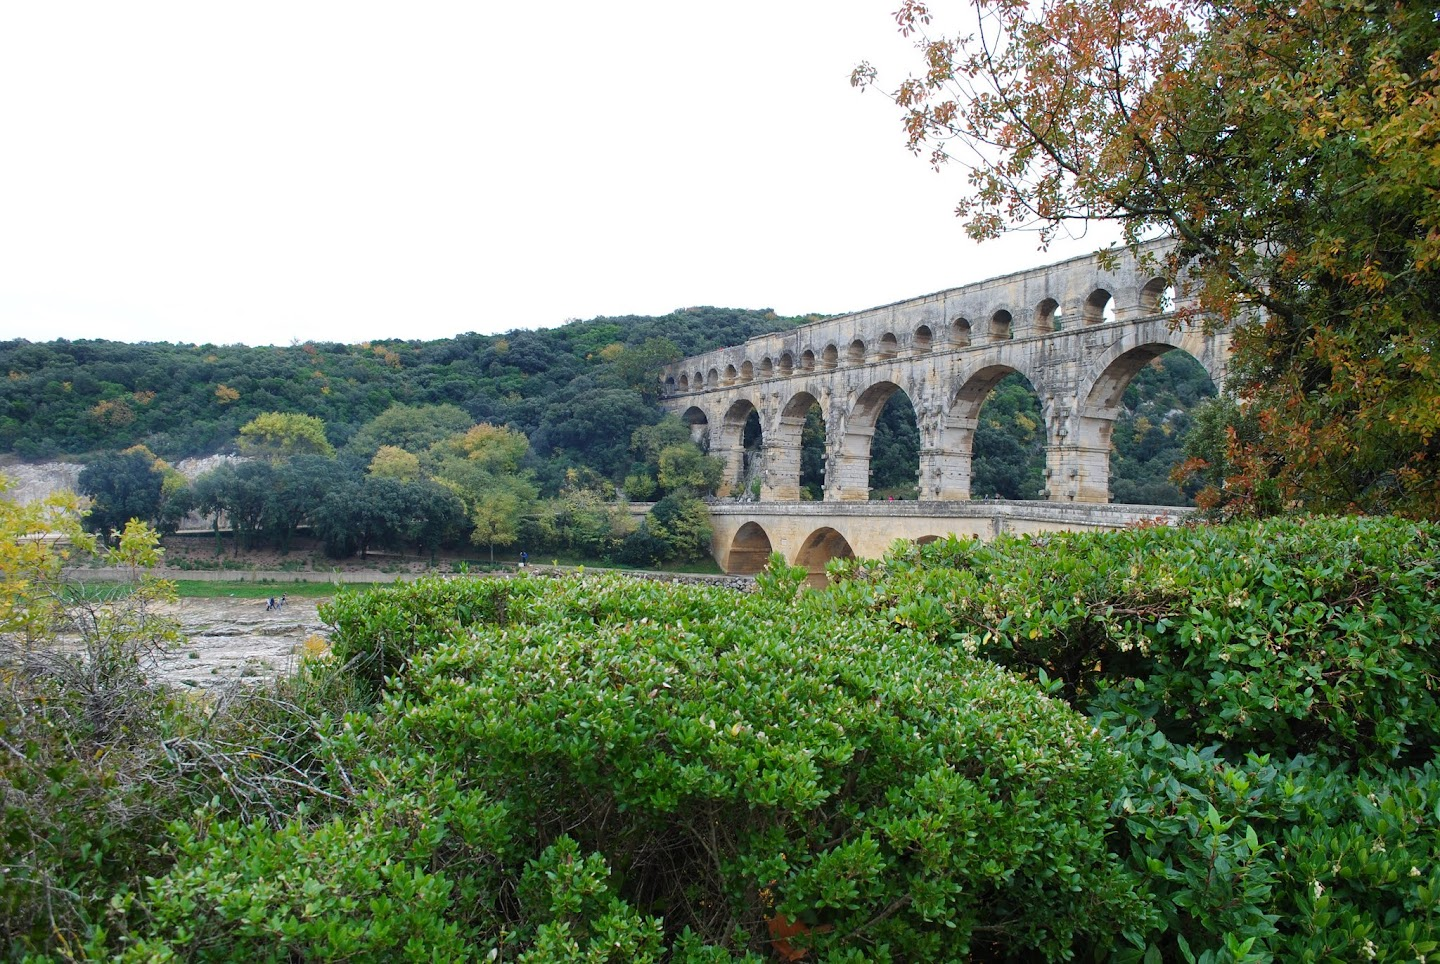 My Photos: France -- Pont du Gard